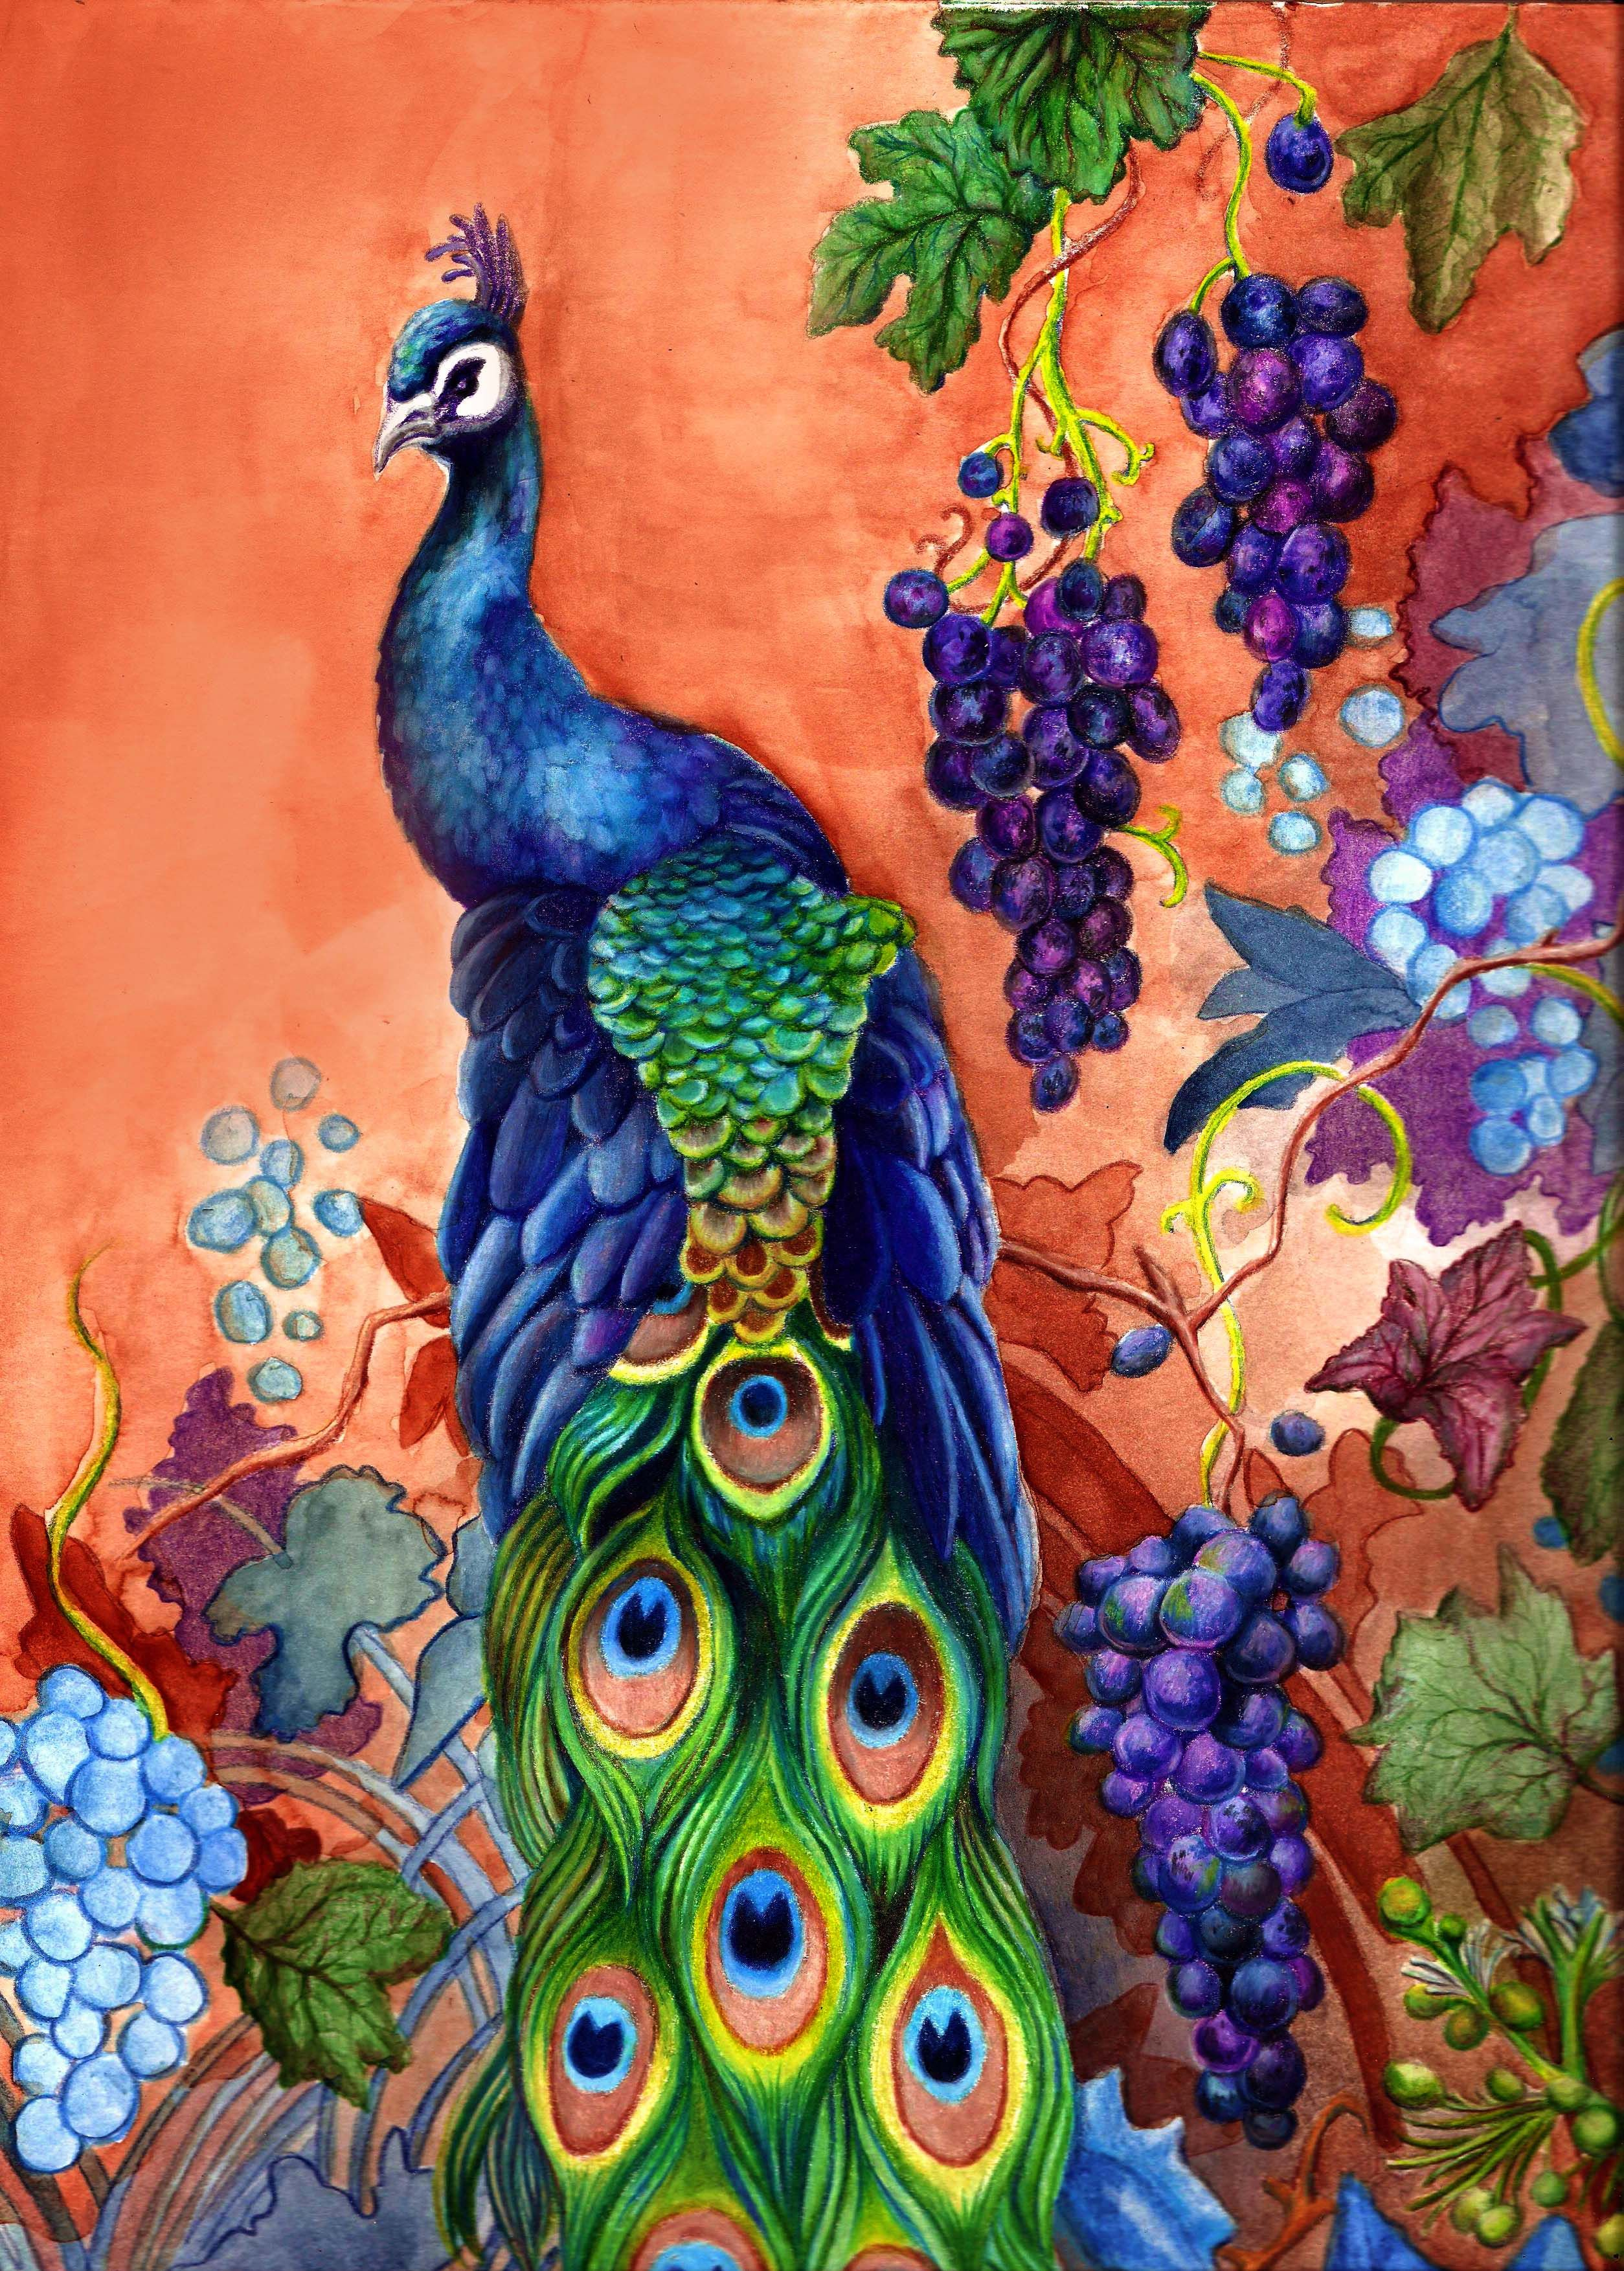 Art farm animal watercolor painting on canvas art 8x10 artsyhome - Peacock Art Peacock Bird Artwork With Grapes